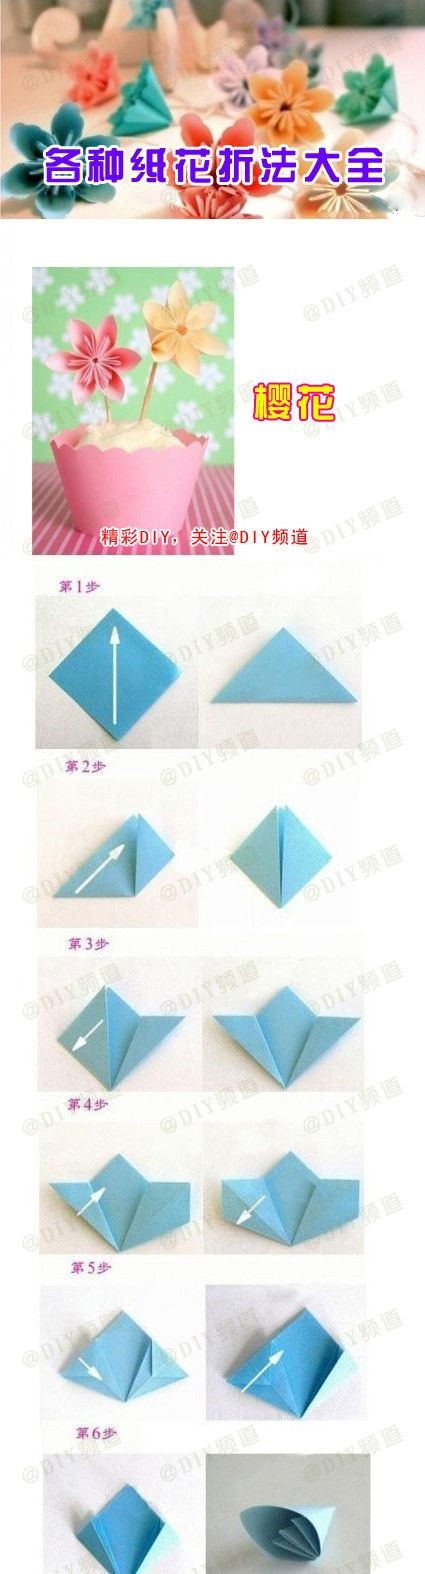 Origami Flower Tutorial Love It For Cupcakes